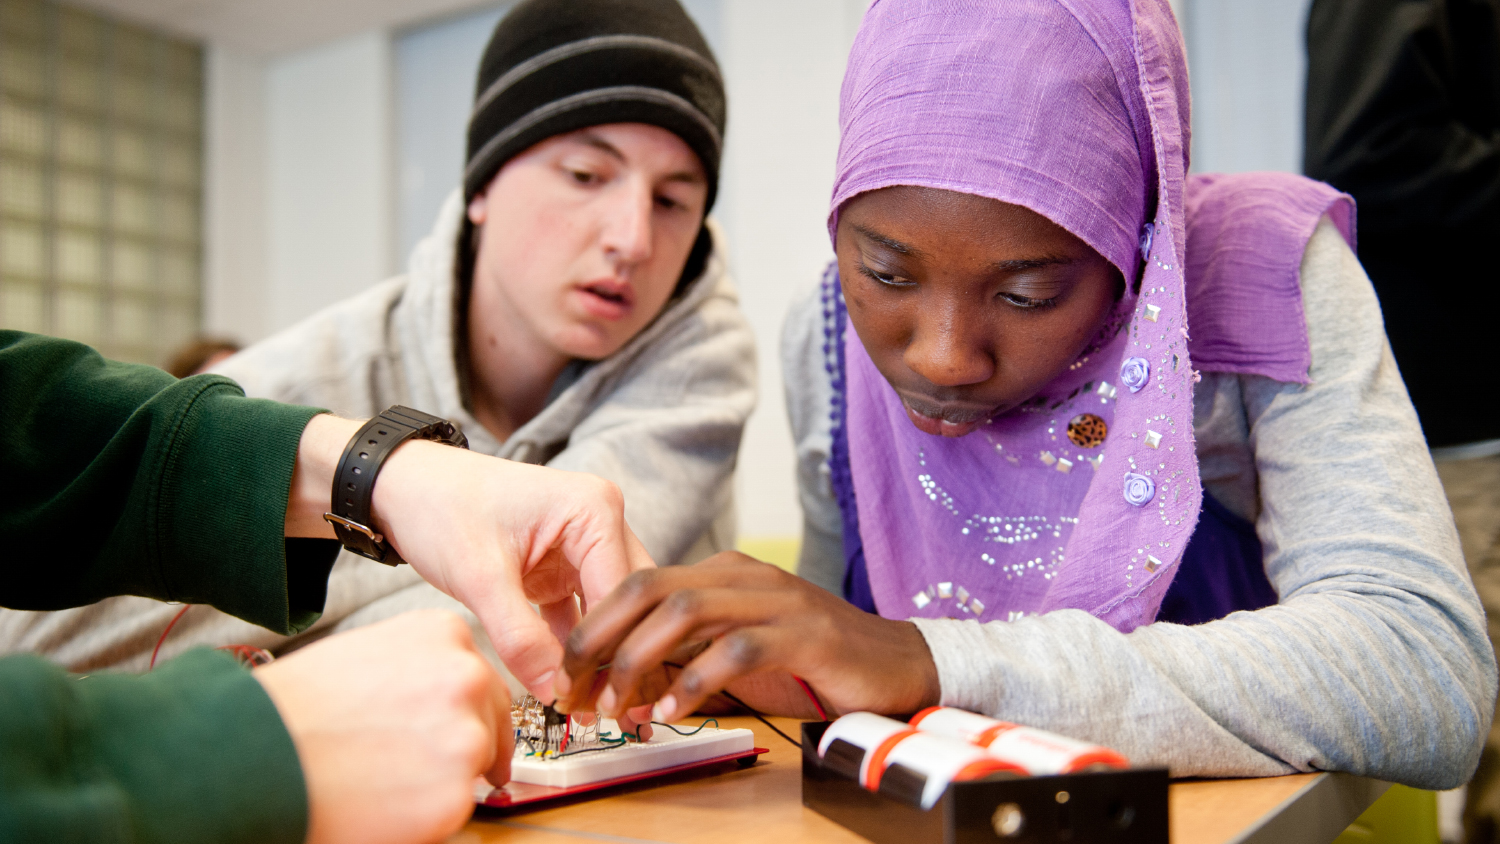 Two young students closely examine a device in a classroom setting.